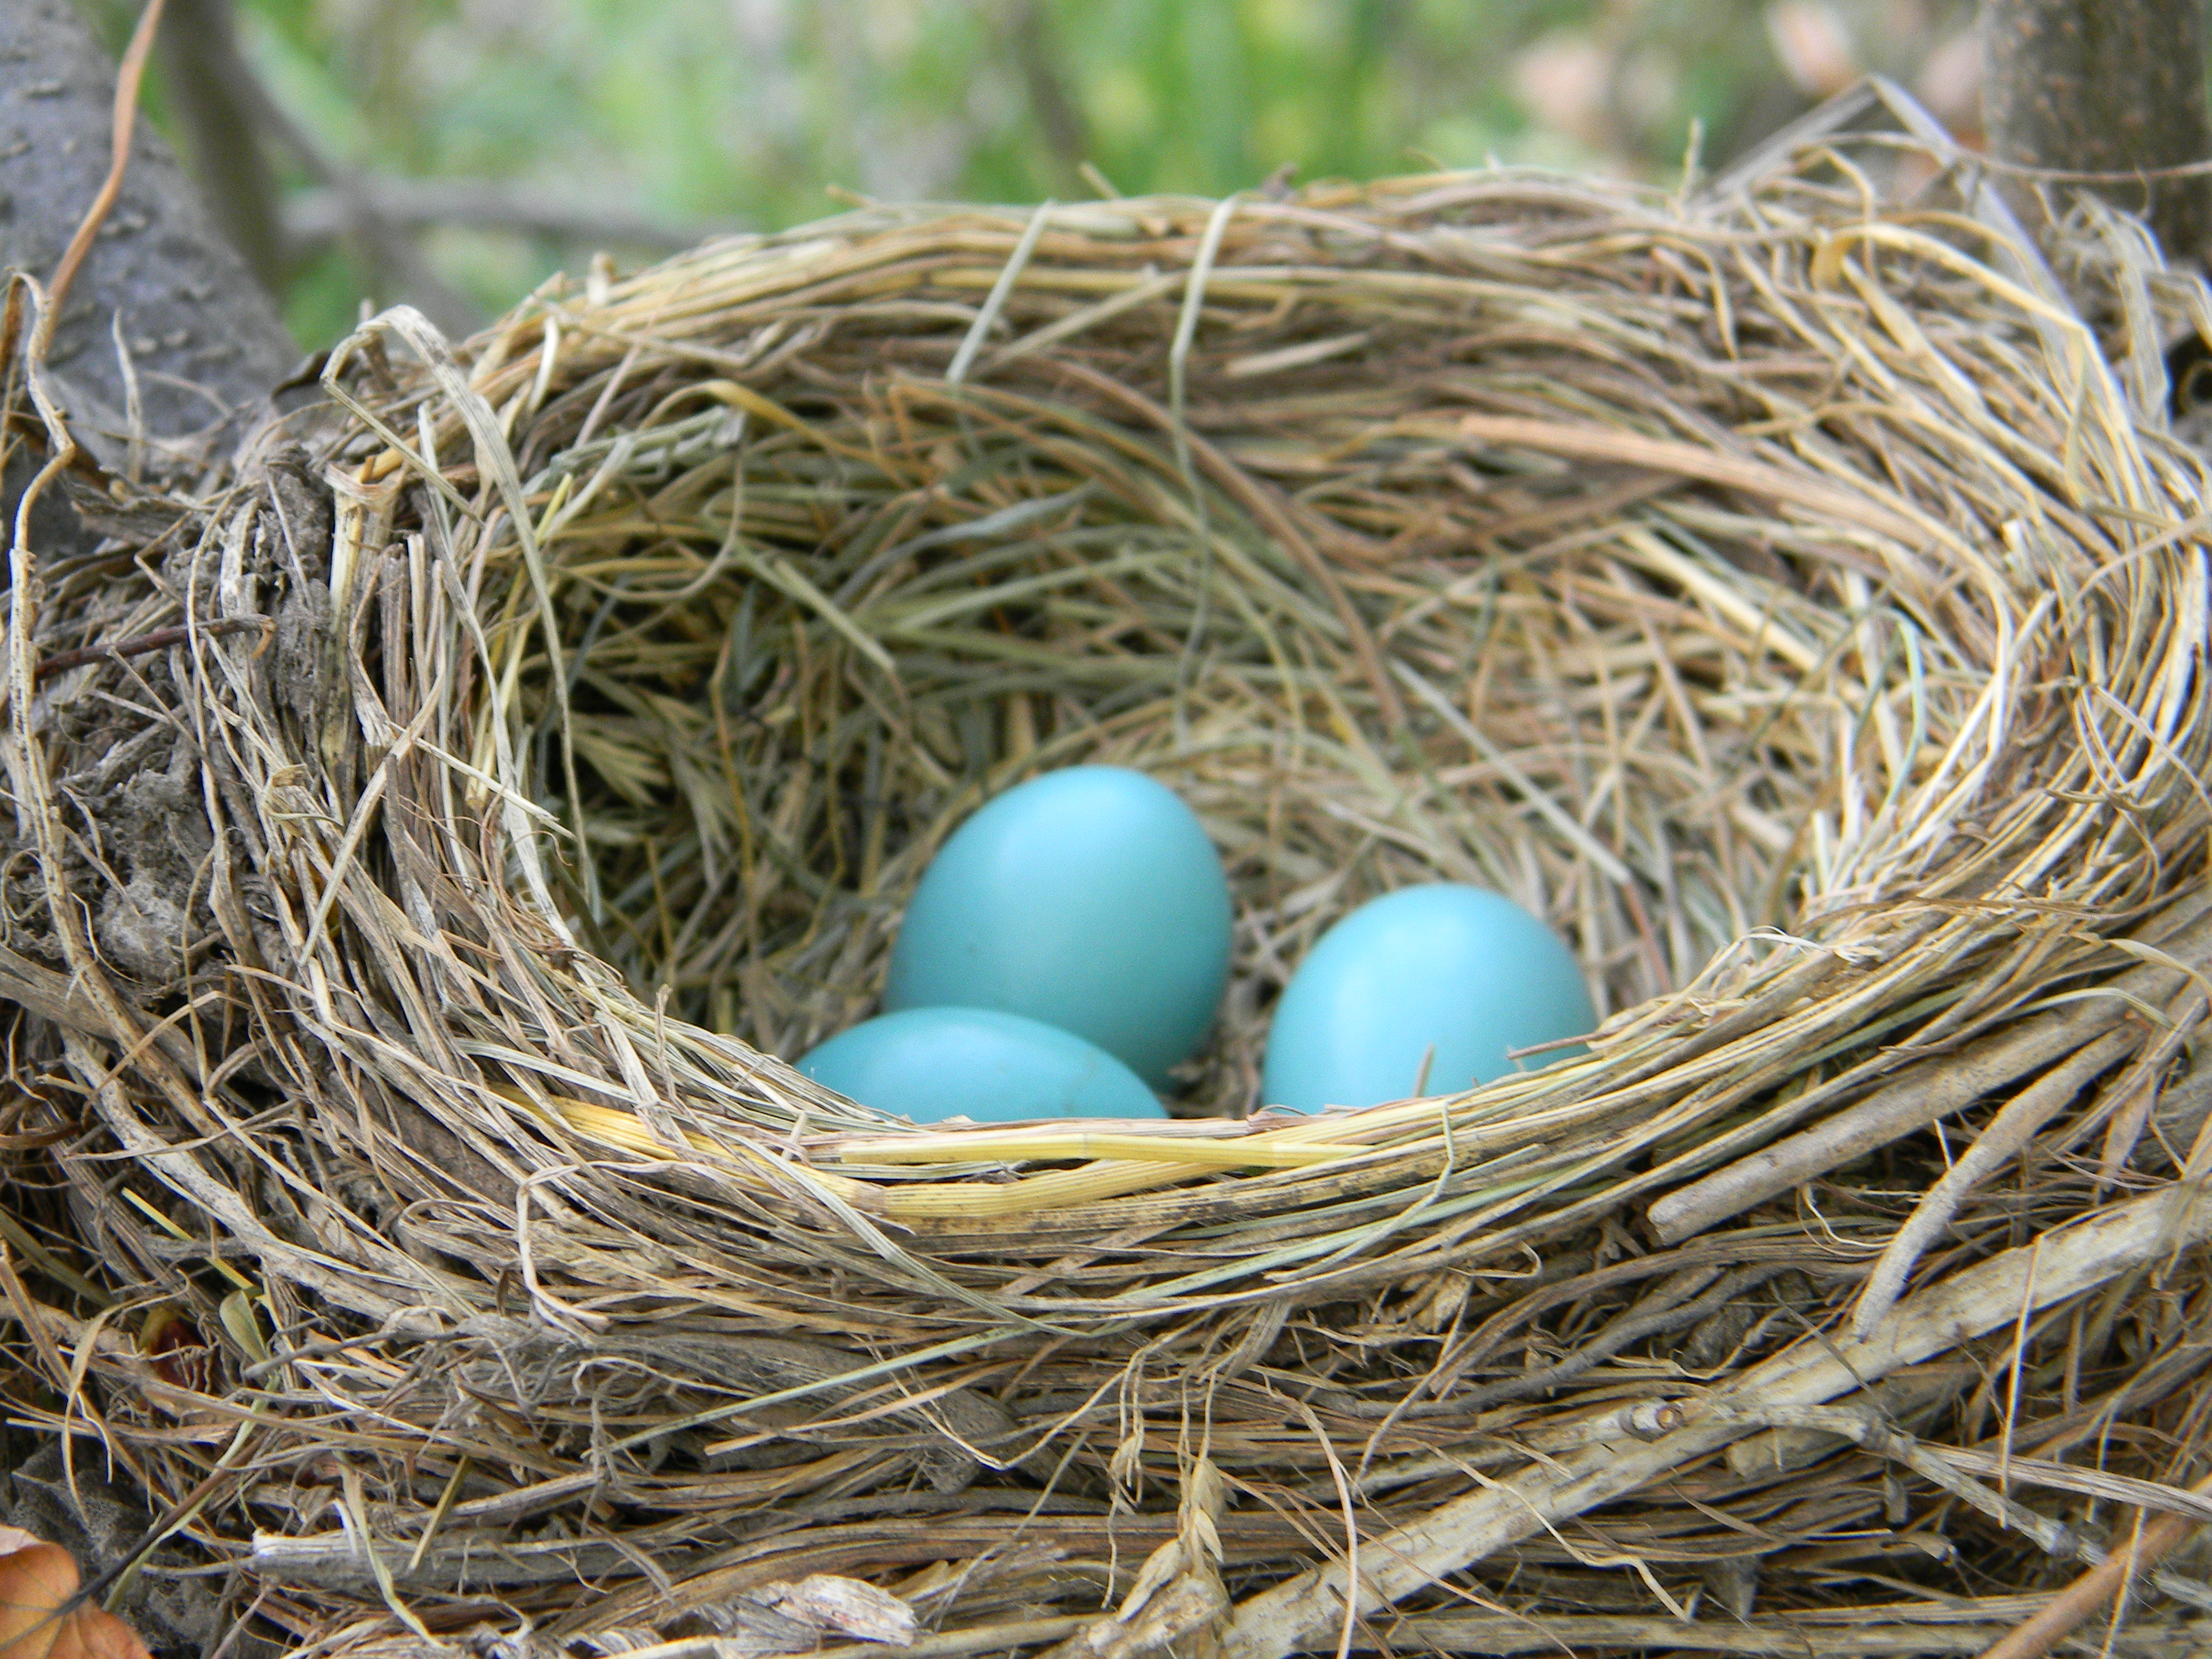 File:American Robin Nest with Eggs.jpg - Wikimedia Commons